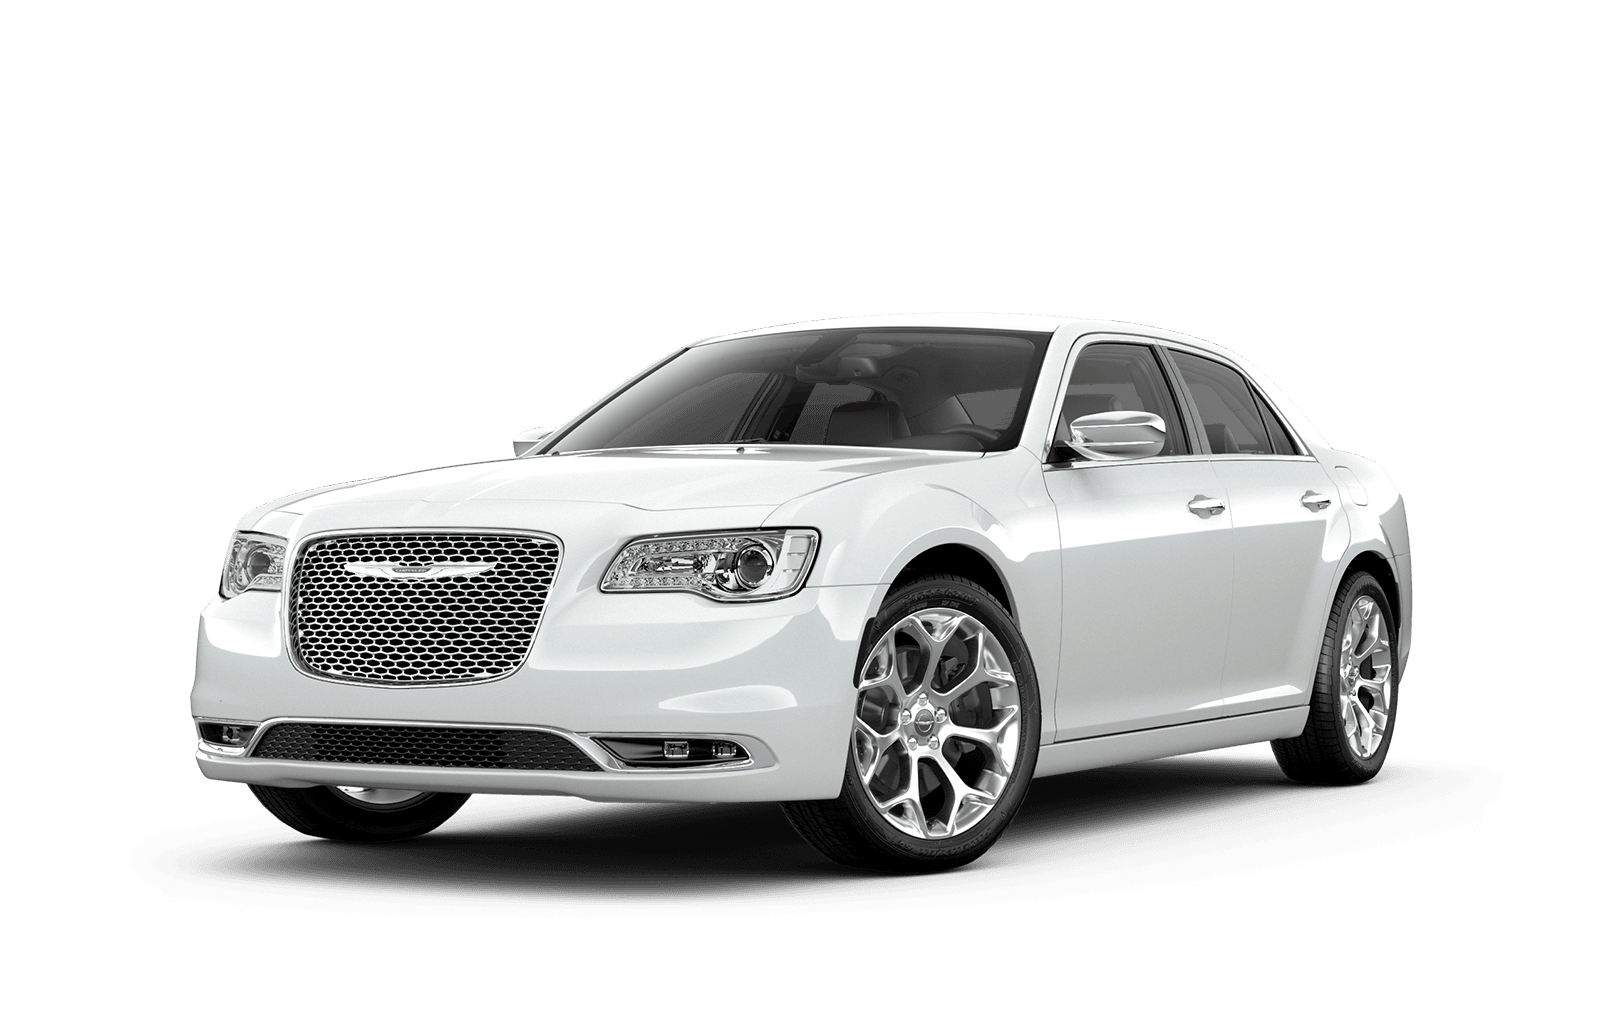 2019 Chrysler 300 Full View in White with Wheels